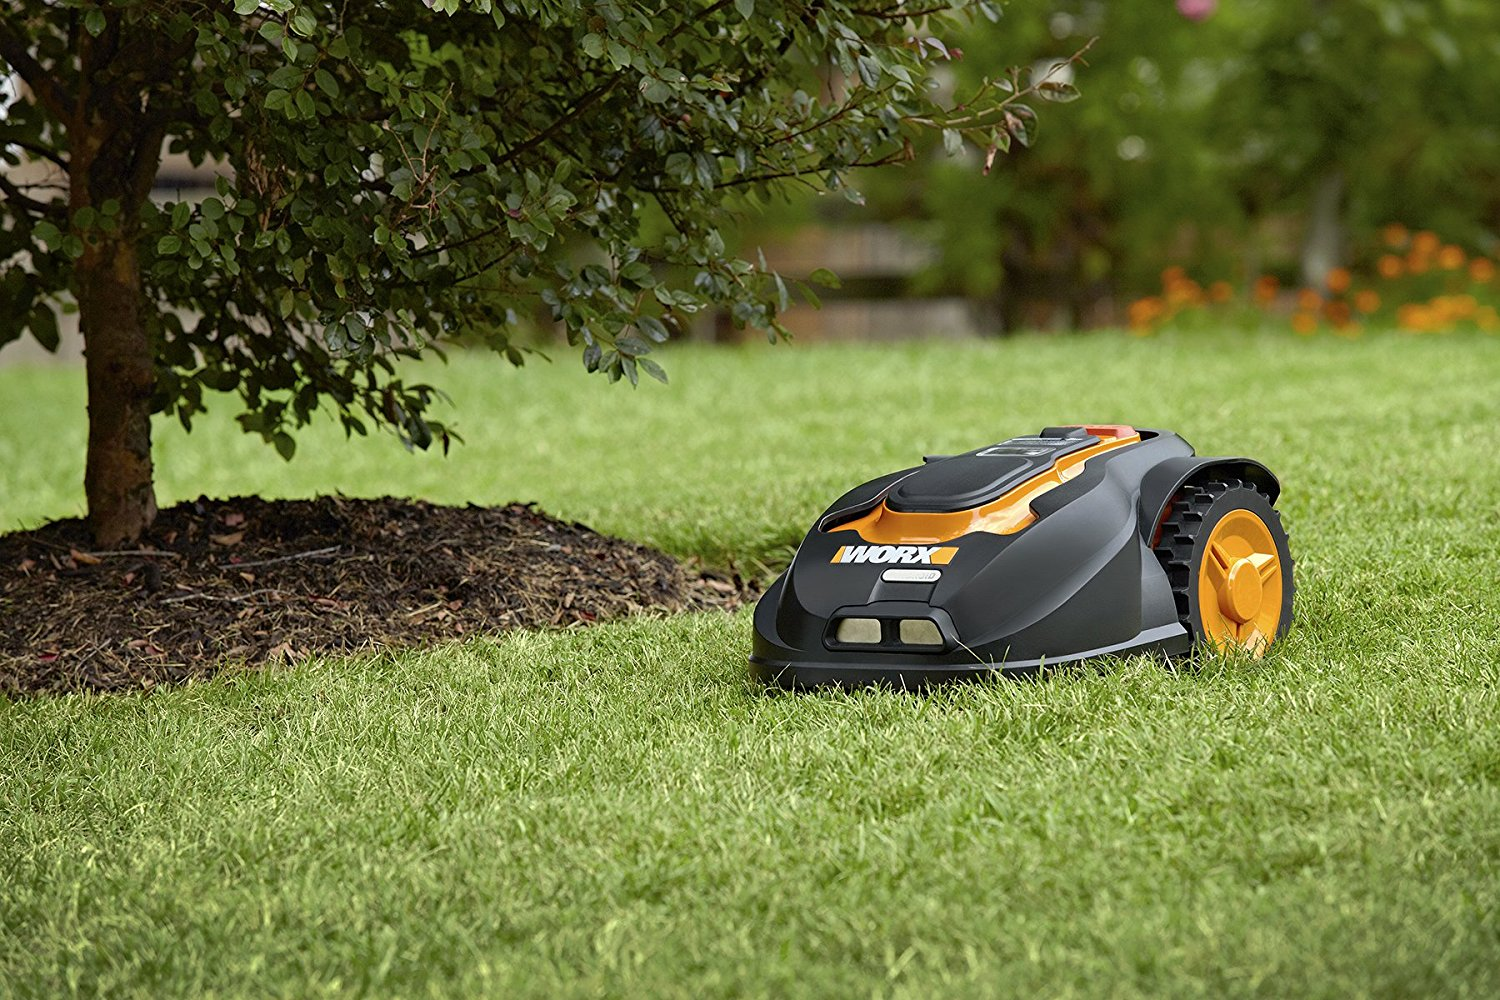 Robotic remote control Lawn Mower